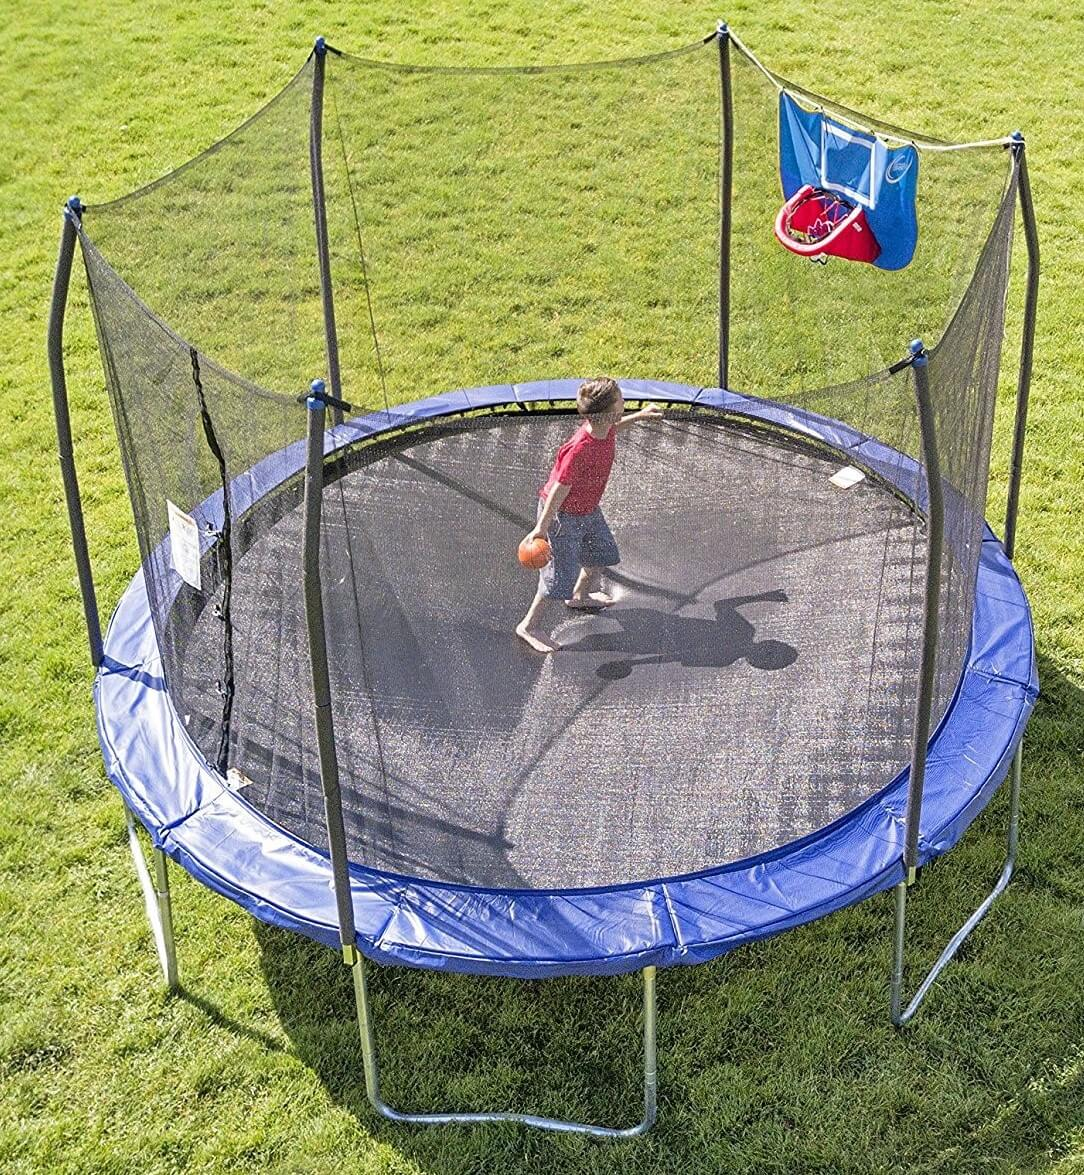 Skywalker 12 Ft. Jump N' Dunk with Safety enclosure and Basketball Hoop